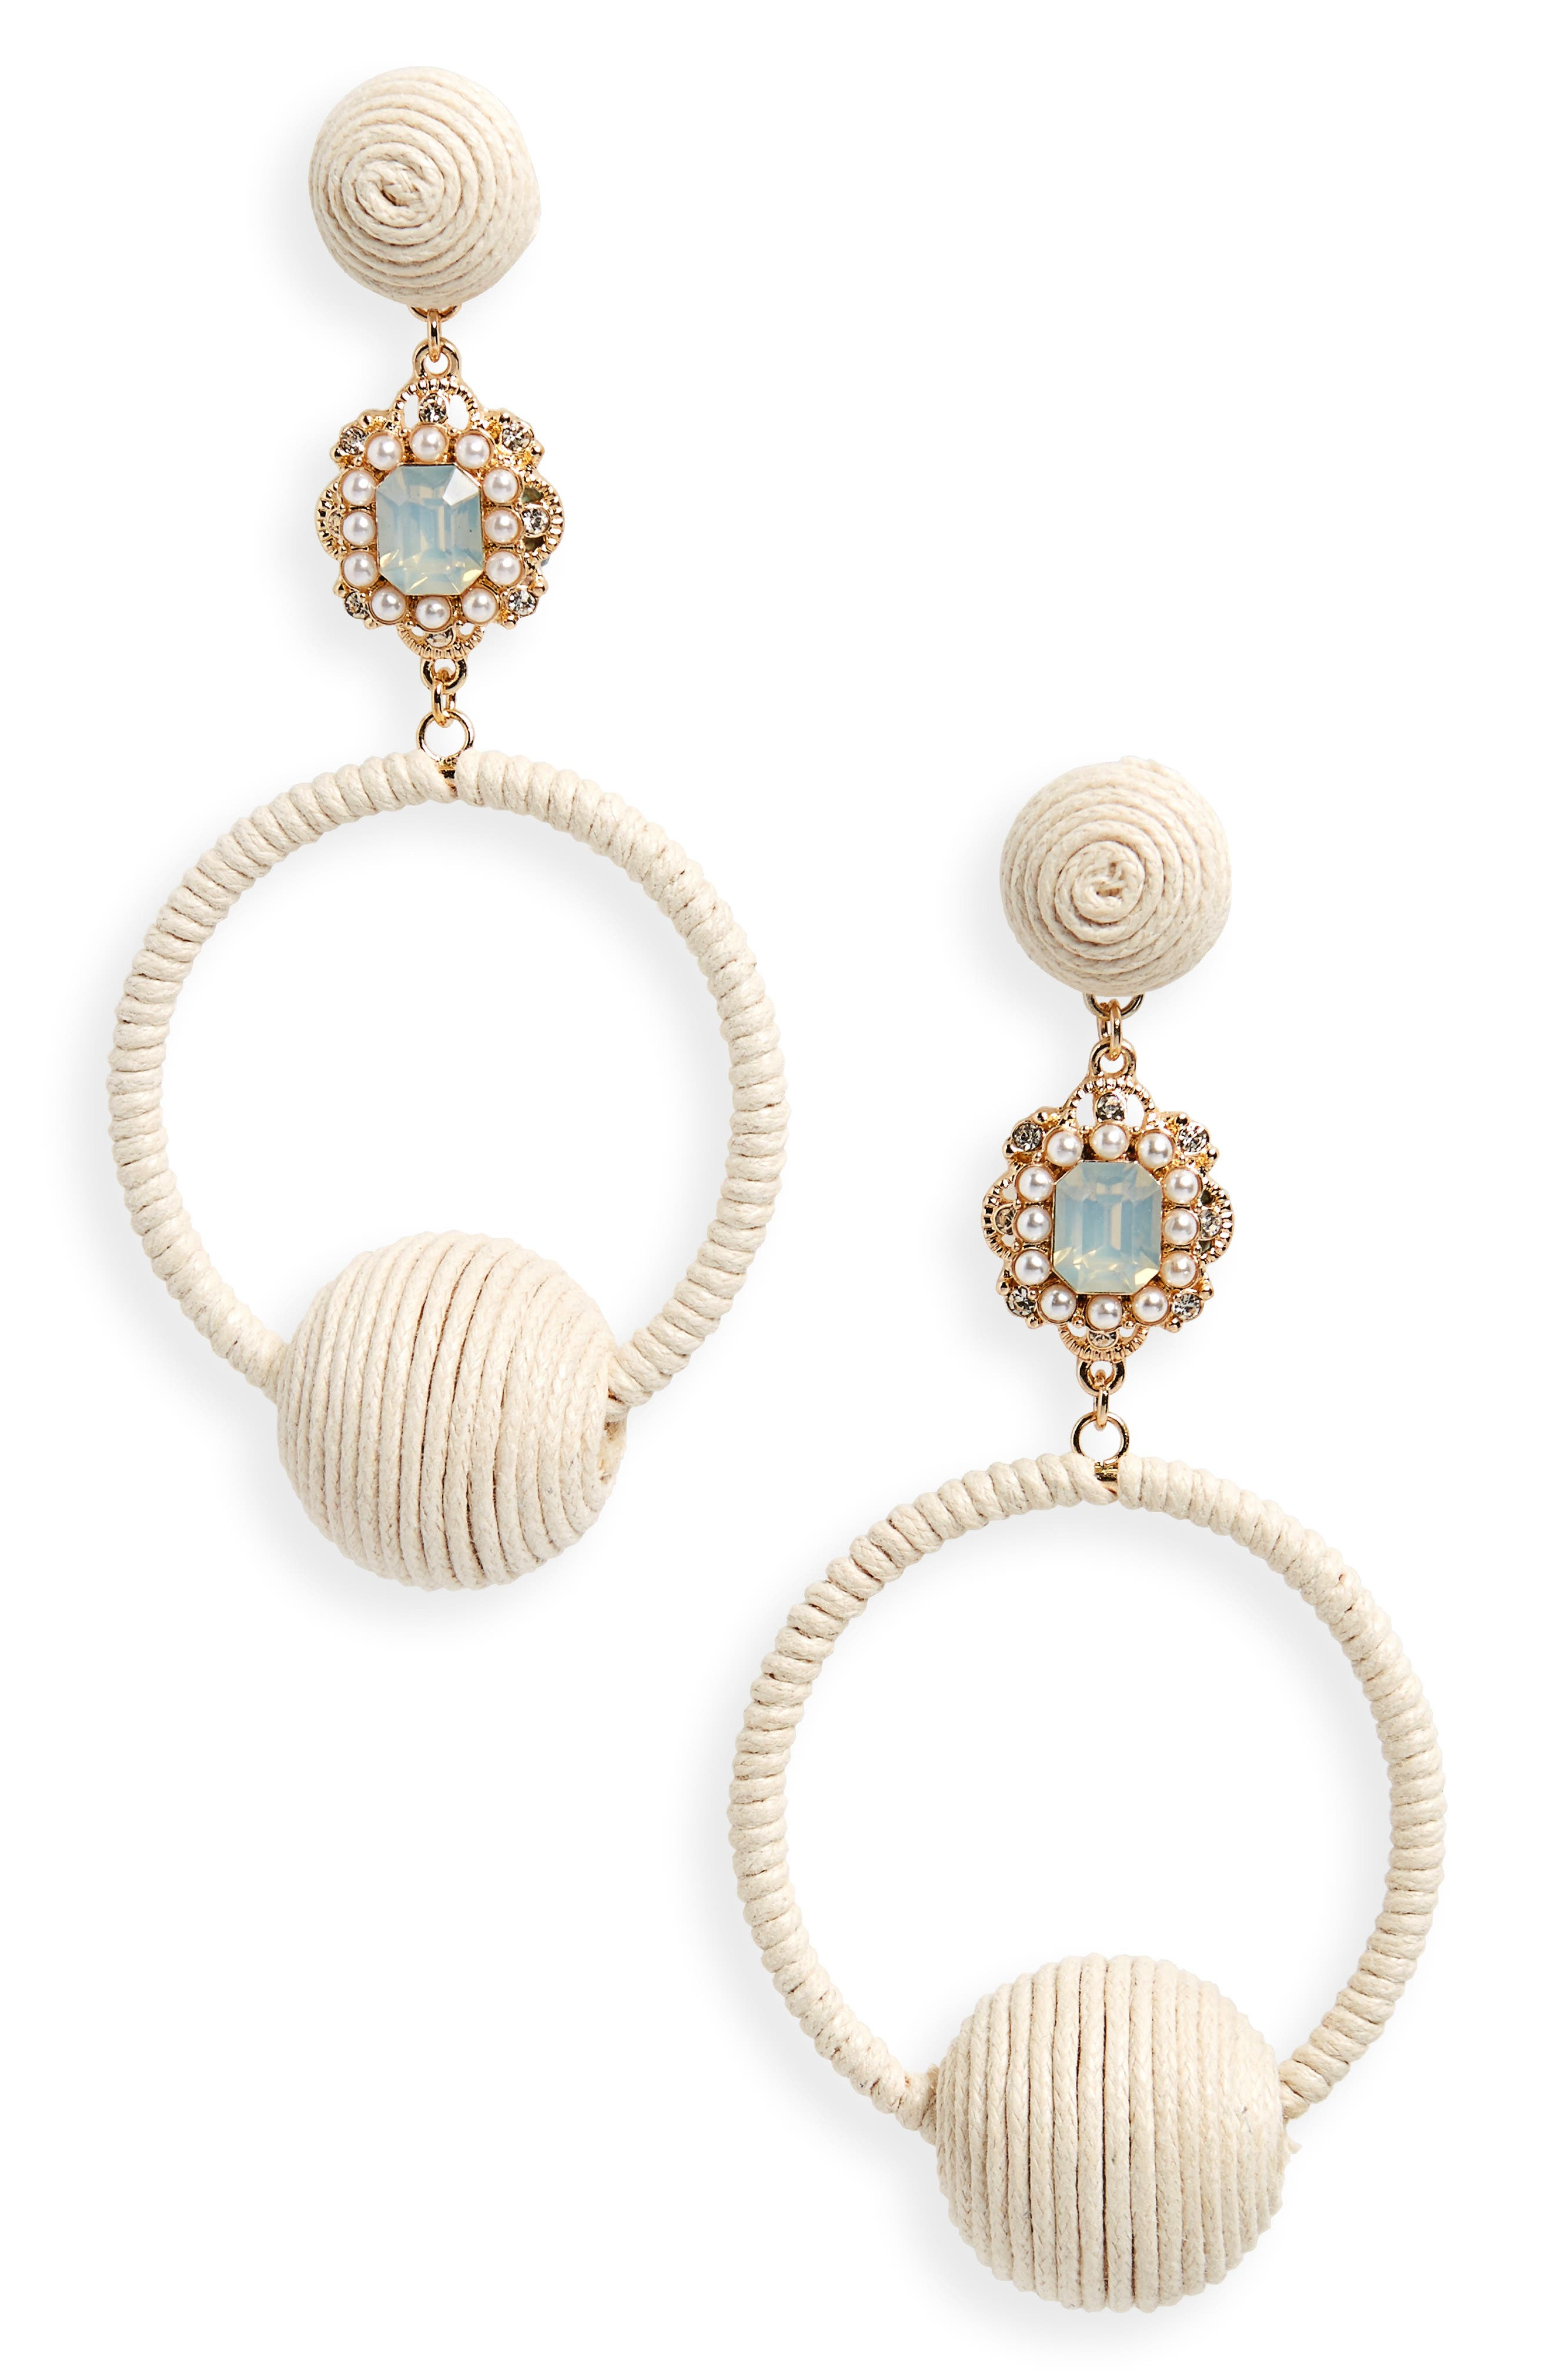 String Wrapped Crystal Hoop Earrings,                             Main thumbnail 1, color,                             Gold/ Ivory